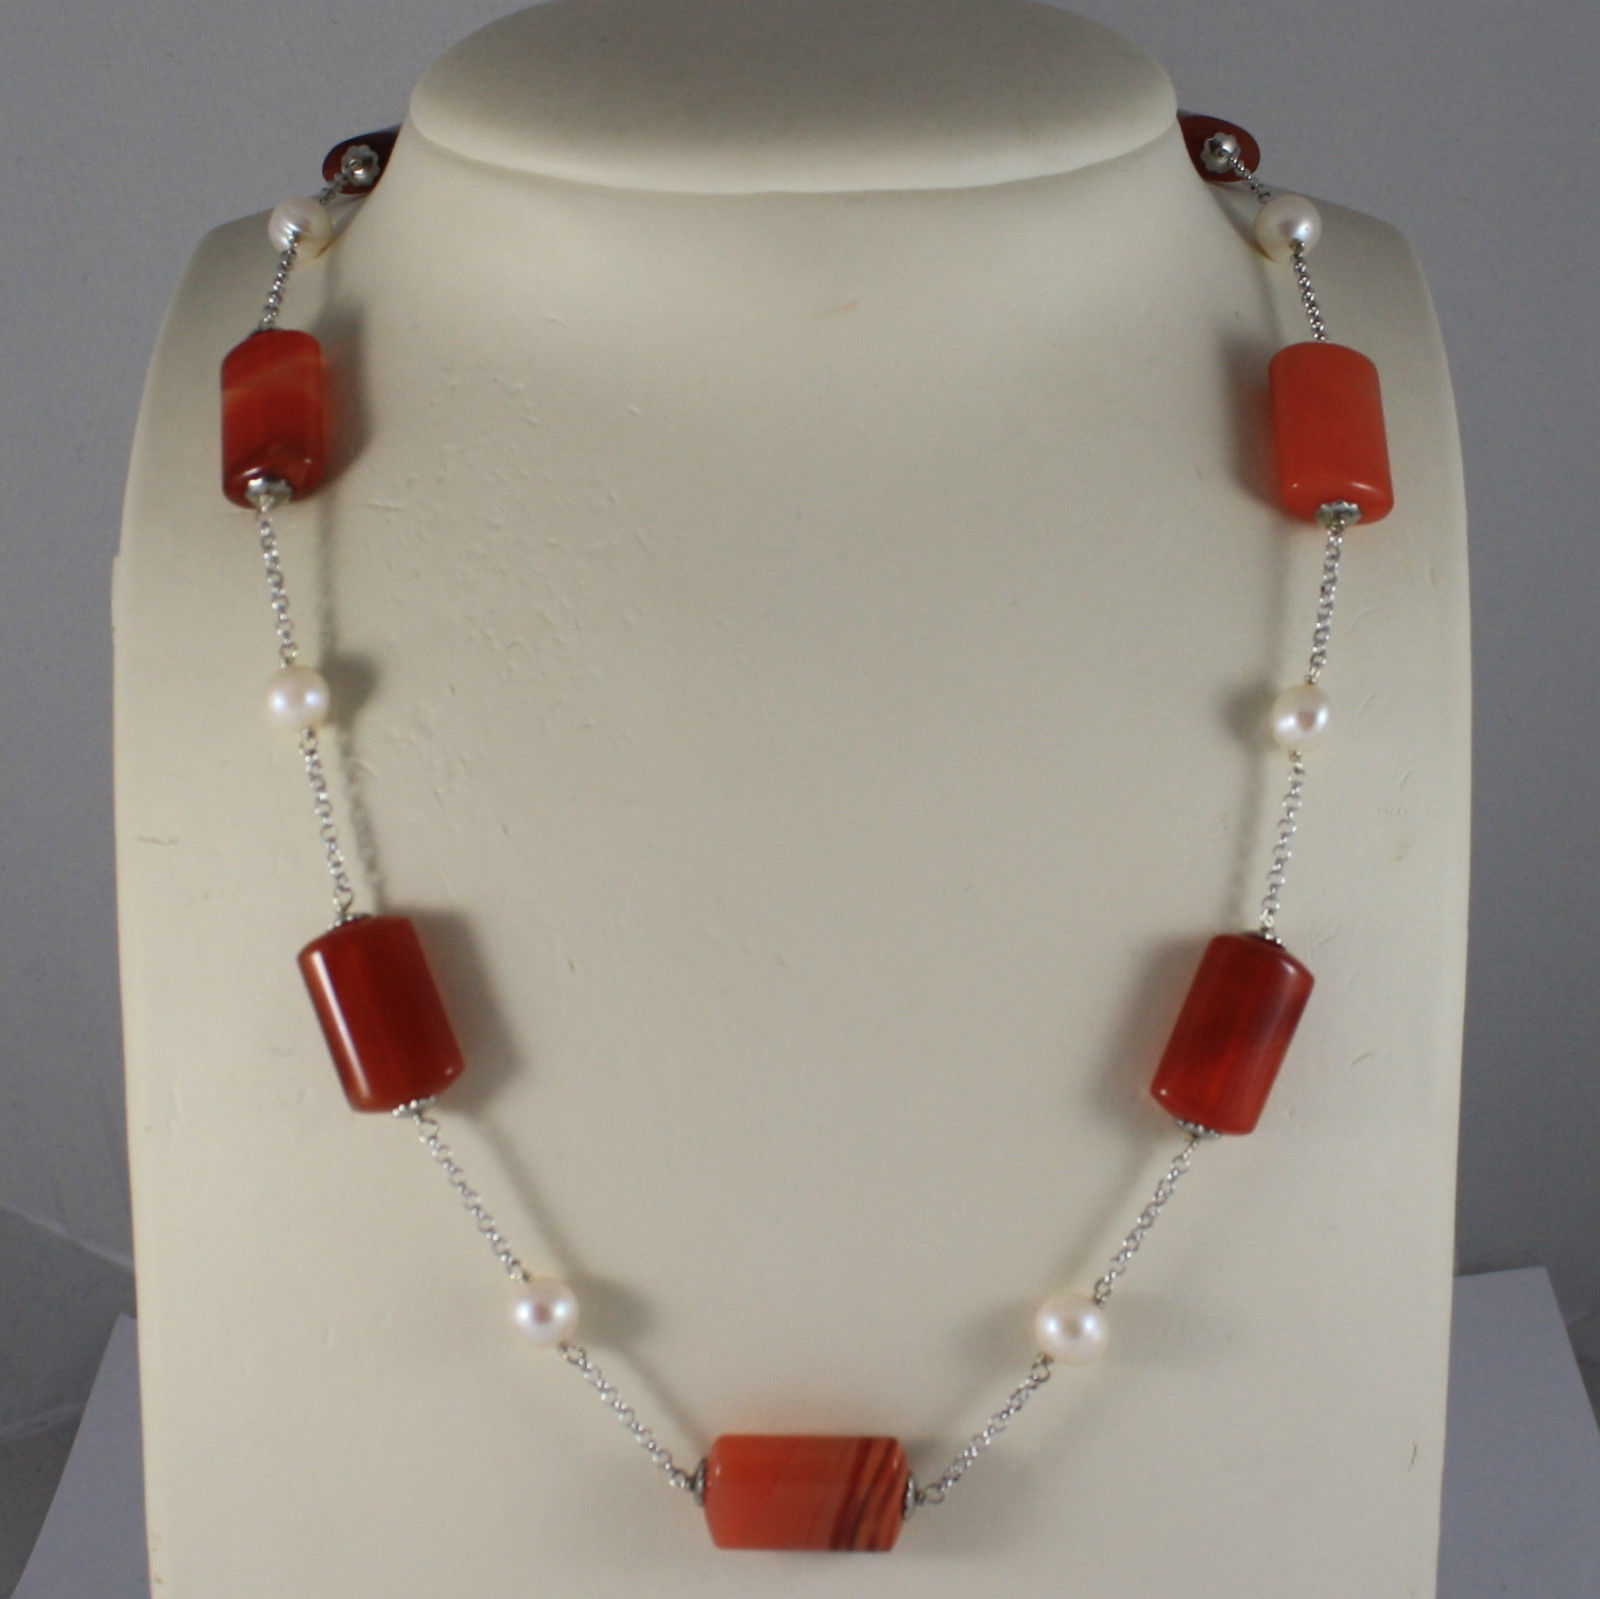 .925 SILVER RHODIUM NECKLACE WITH ORANGE AGATE AND WHITE PEARLS